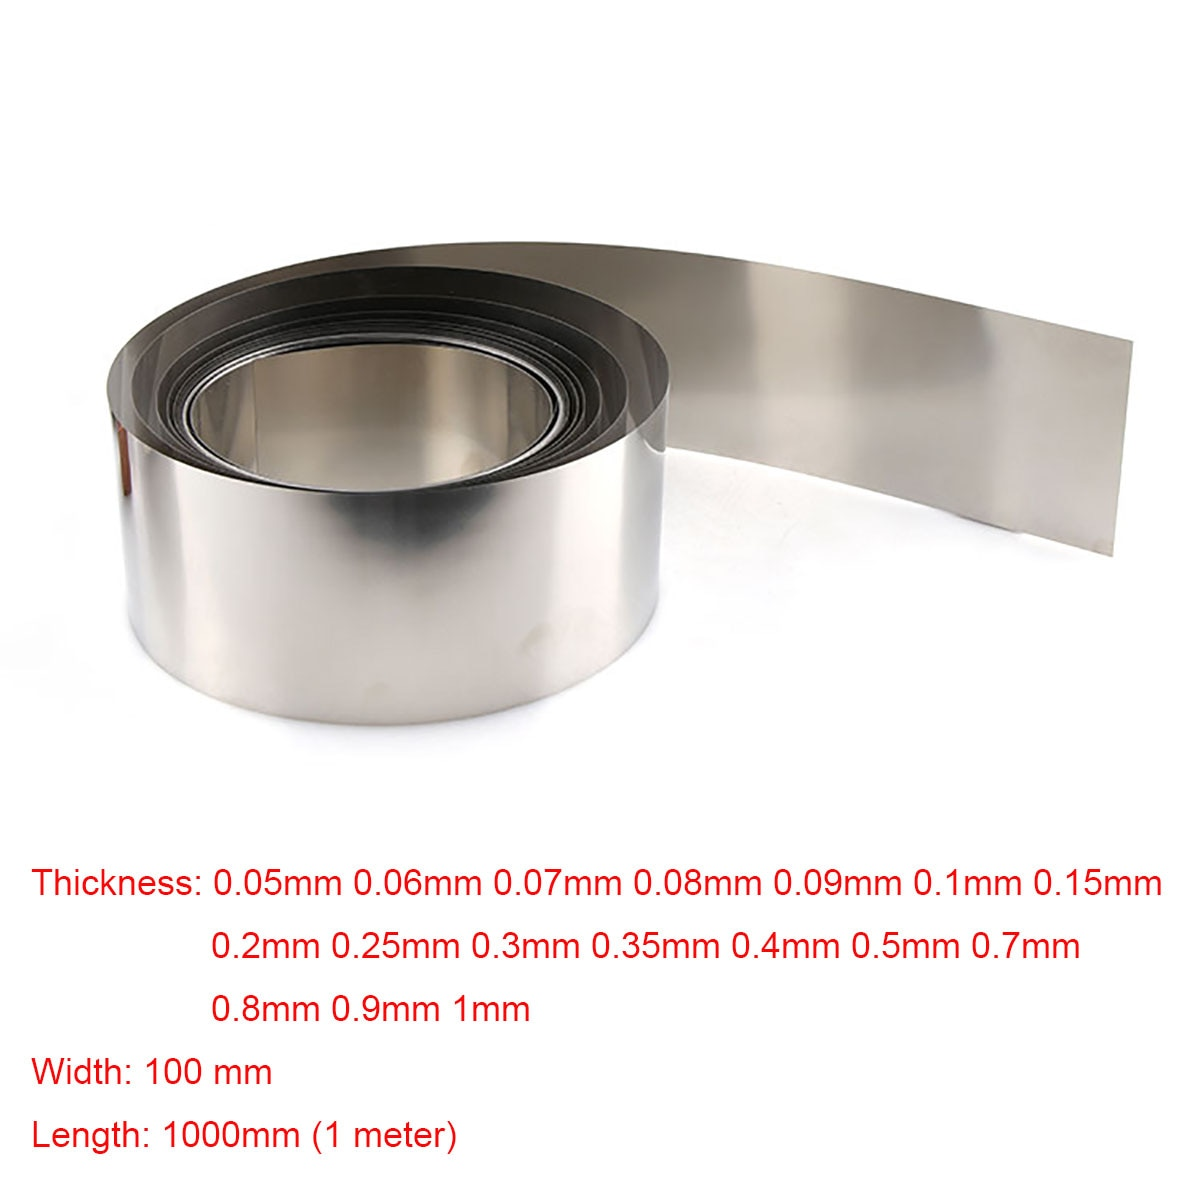 customized authentic 304 321 316 stainless steel col rolled bright thin foil tape strip sheet plate coil roll 1pcs 100x1000mm 304 Stainless Steel Foil Strip Sheet Thin Plate Thickness 0.05/0.06/0.07/0.08/0.09/0.1/0.15/0.2/0.25/0.3 -1mm